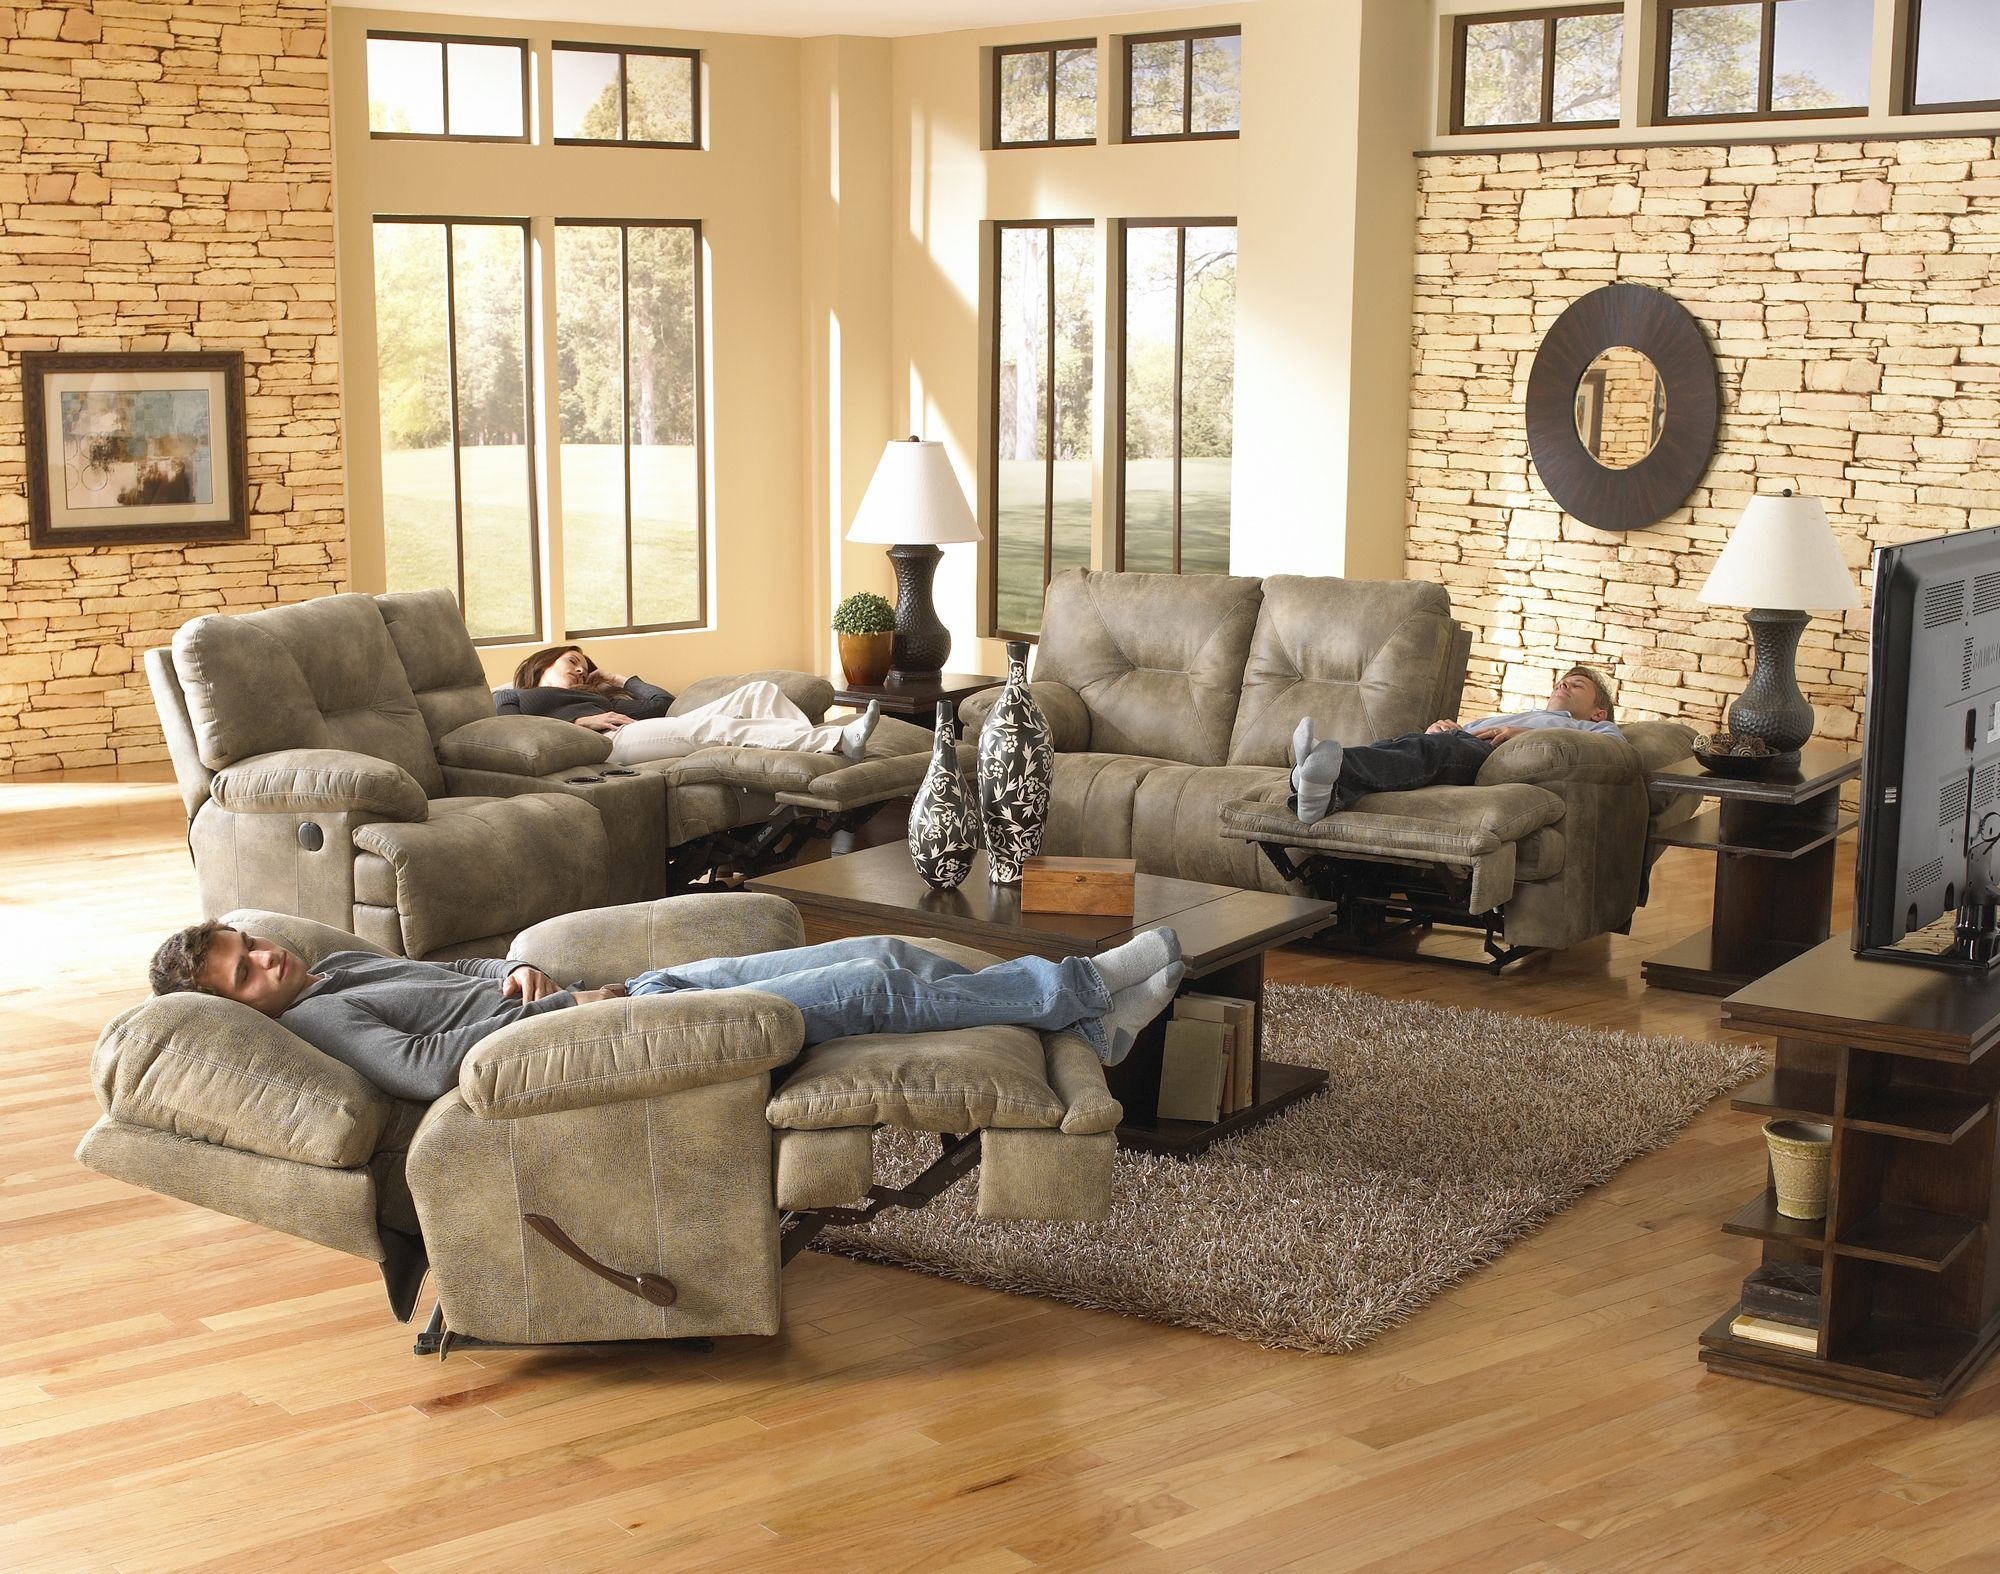 4389 Catnapper Voyager Lay Flat Console Reclining Lovese Available In Several Colo Reclining Sofa Living Room Living Room Sets Reclining Sofa